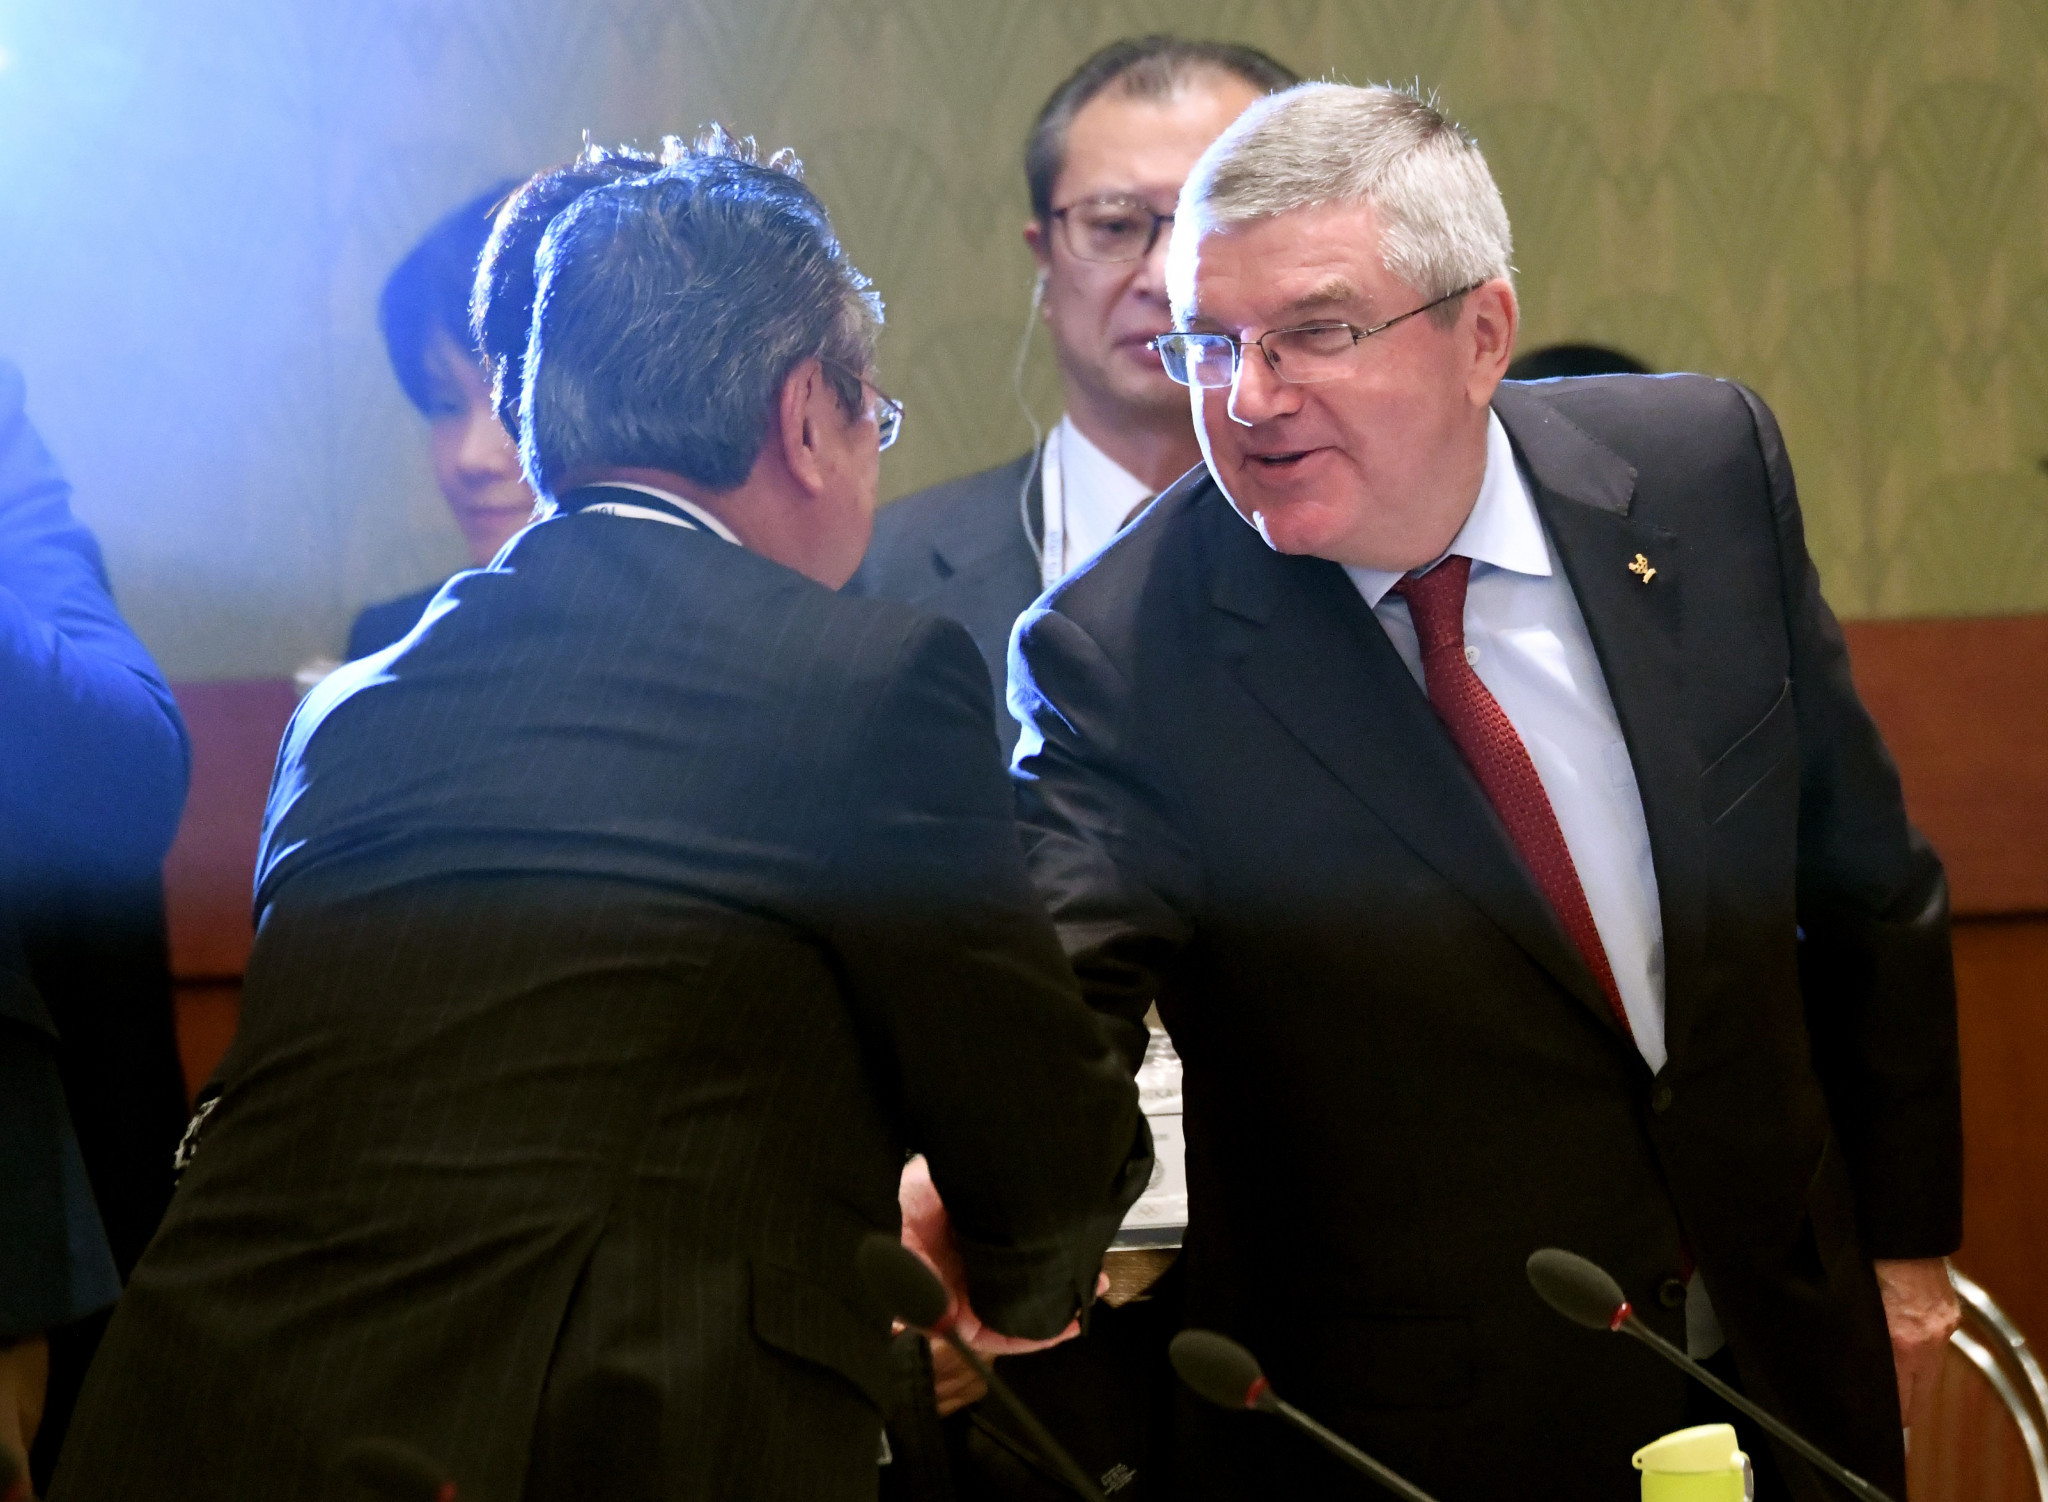 Japan's Olympics Minister Yoshitaka Sakurada meets IOC President Thomas Bach during a meeting in Tokyo ©Getty Images